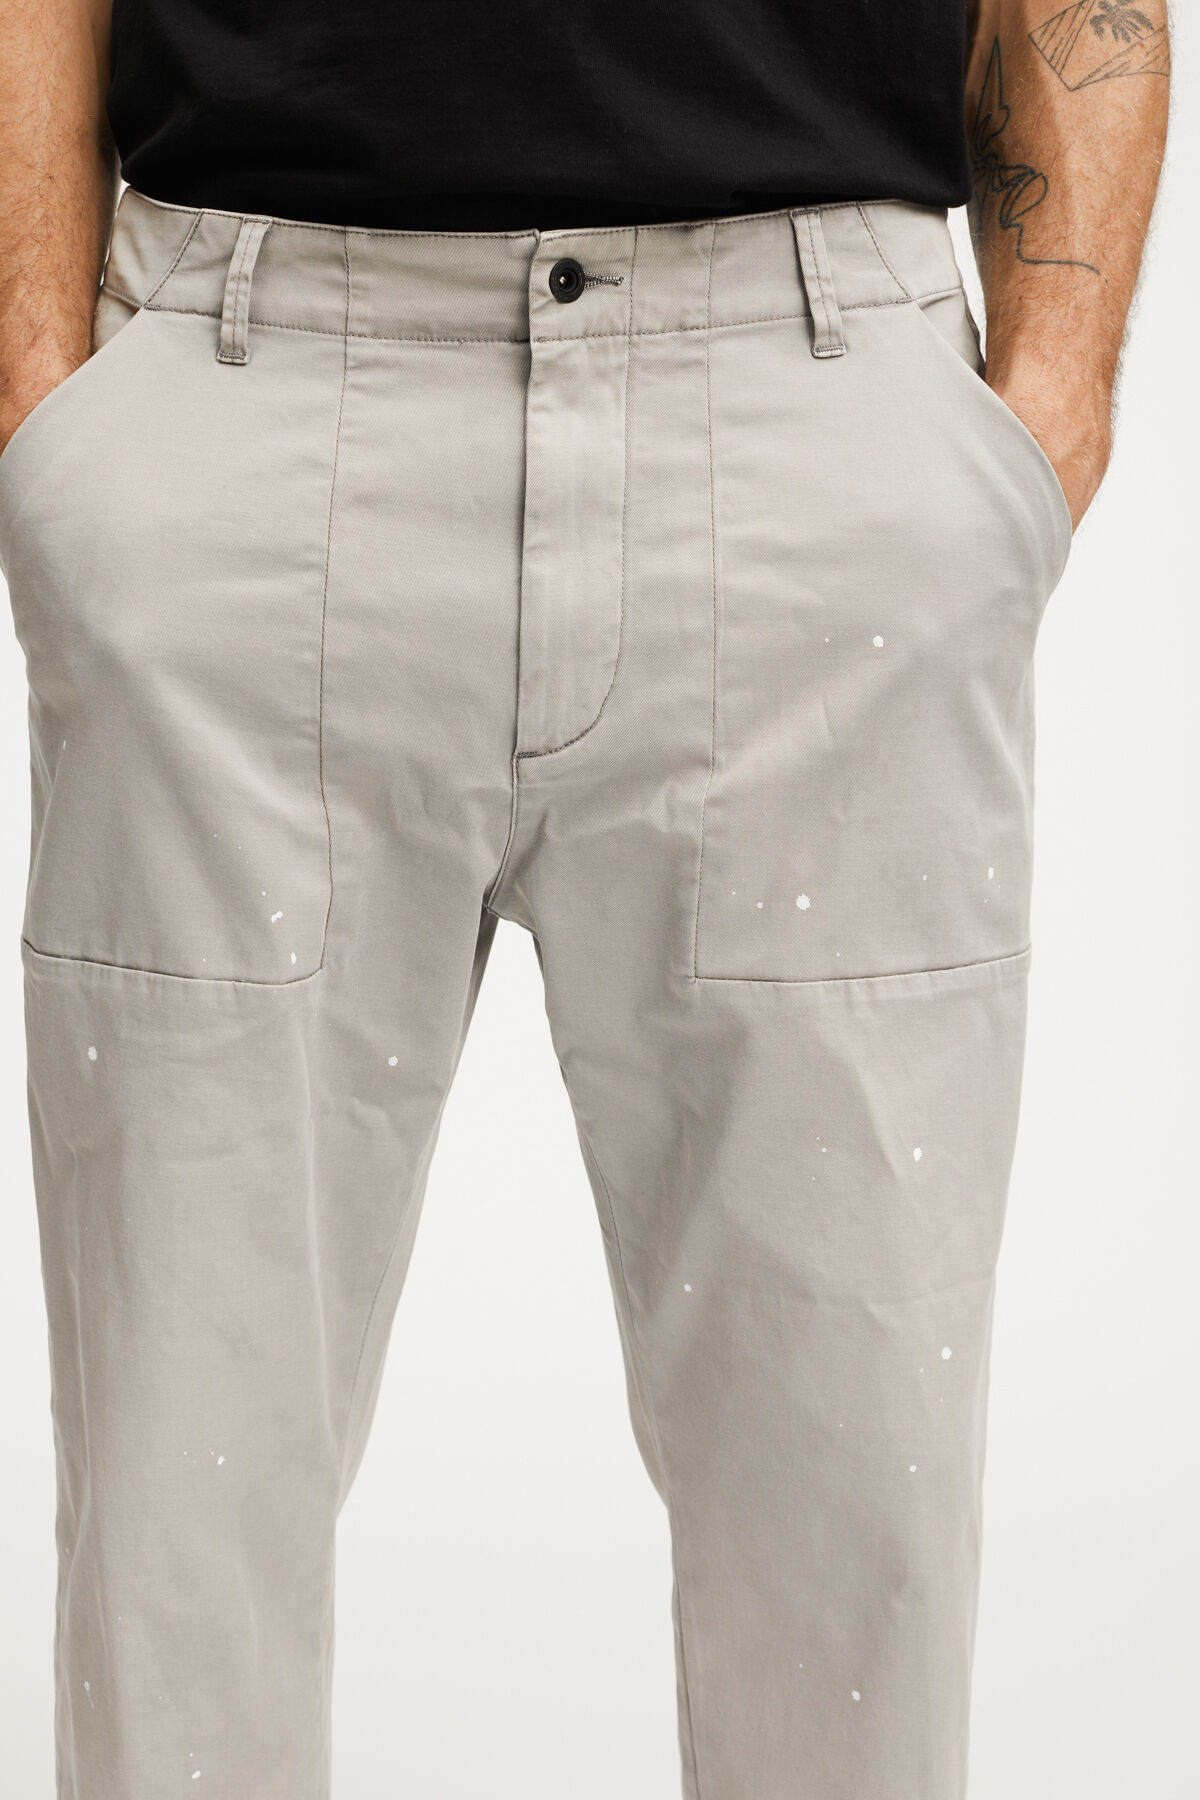 FATIGUE TROUSERS LEFTHAND COTTON TWILL - WIDE FIT